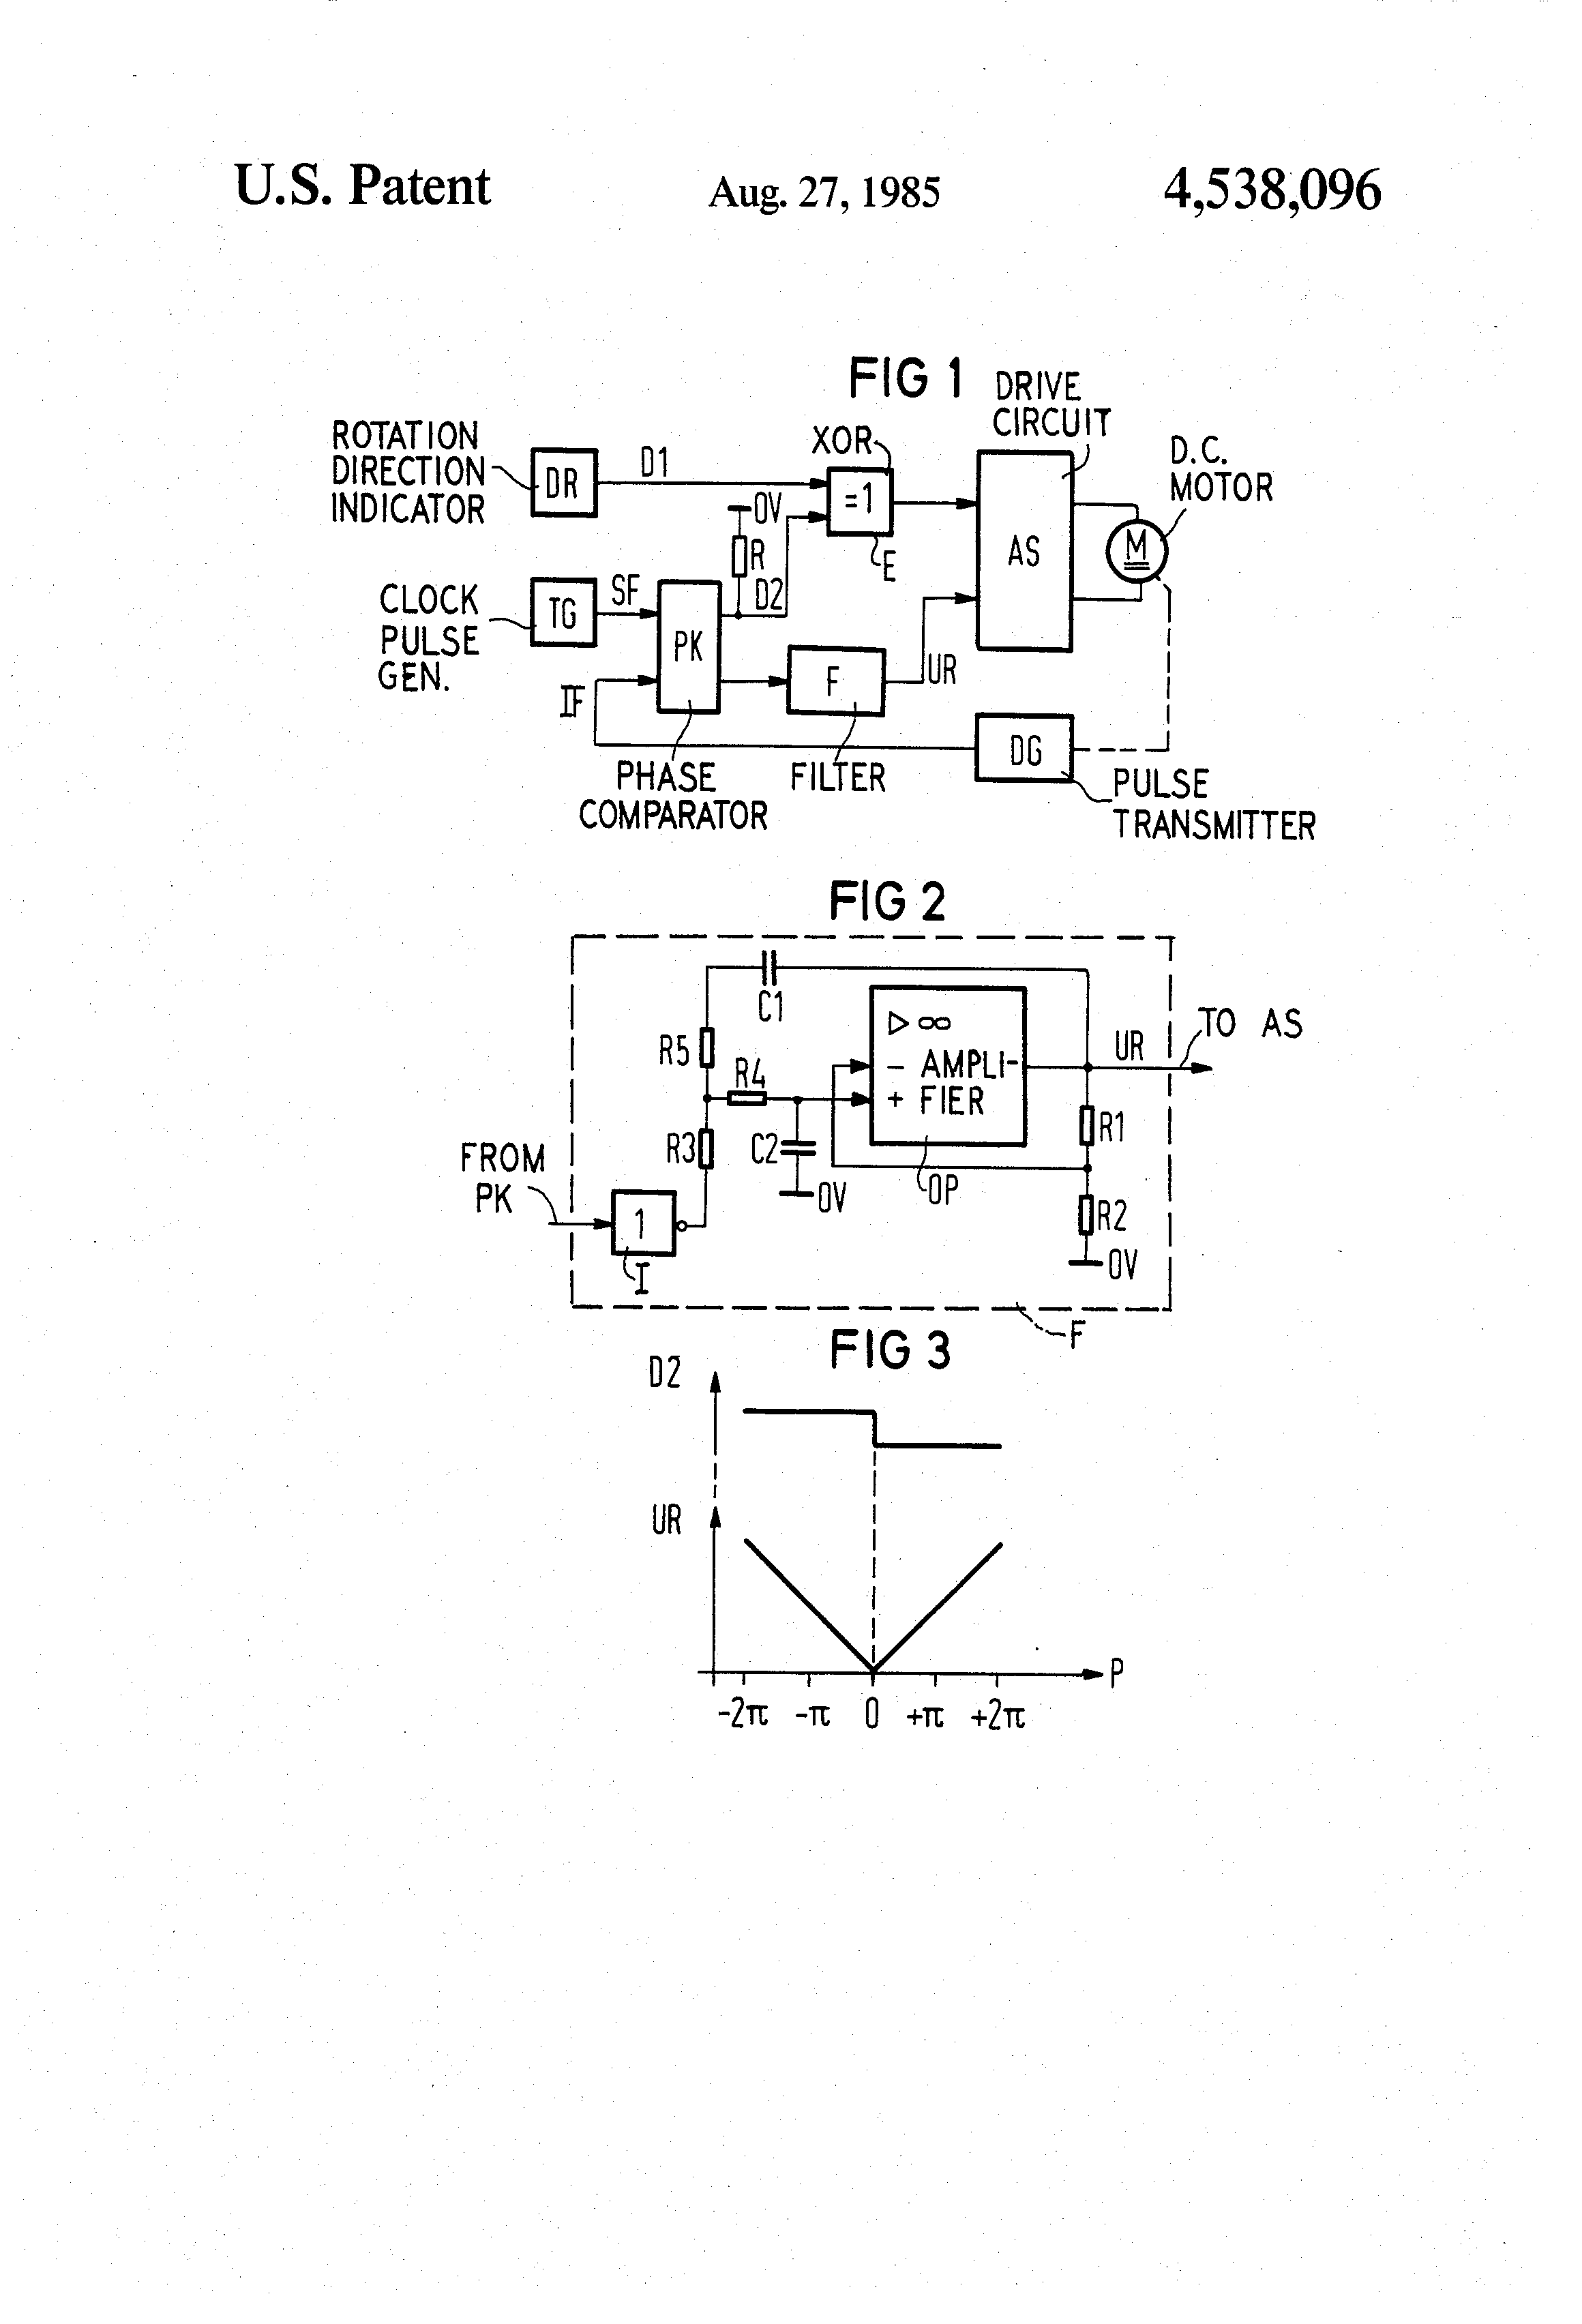 Patente Us4538096 Speed Control Circuit For A Dc Motor Google Driving Motorcontrol Controlcircuit Patent Drawing Previous Page Next Reivindicaes5 I Claim As My Invention 1 Comprising